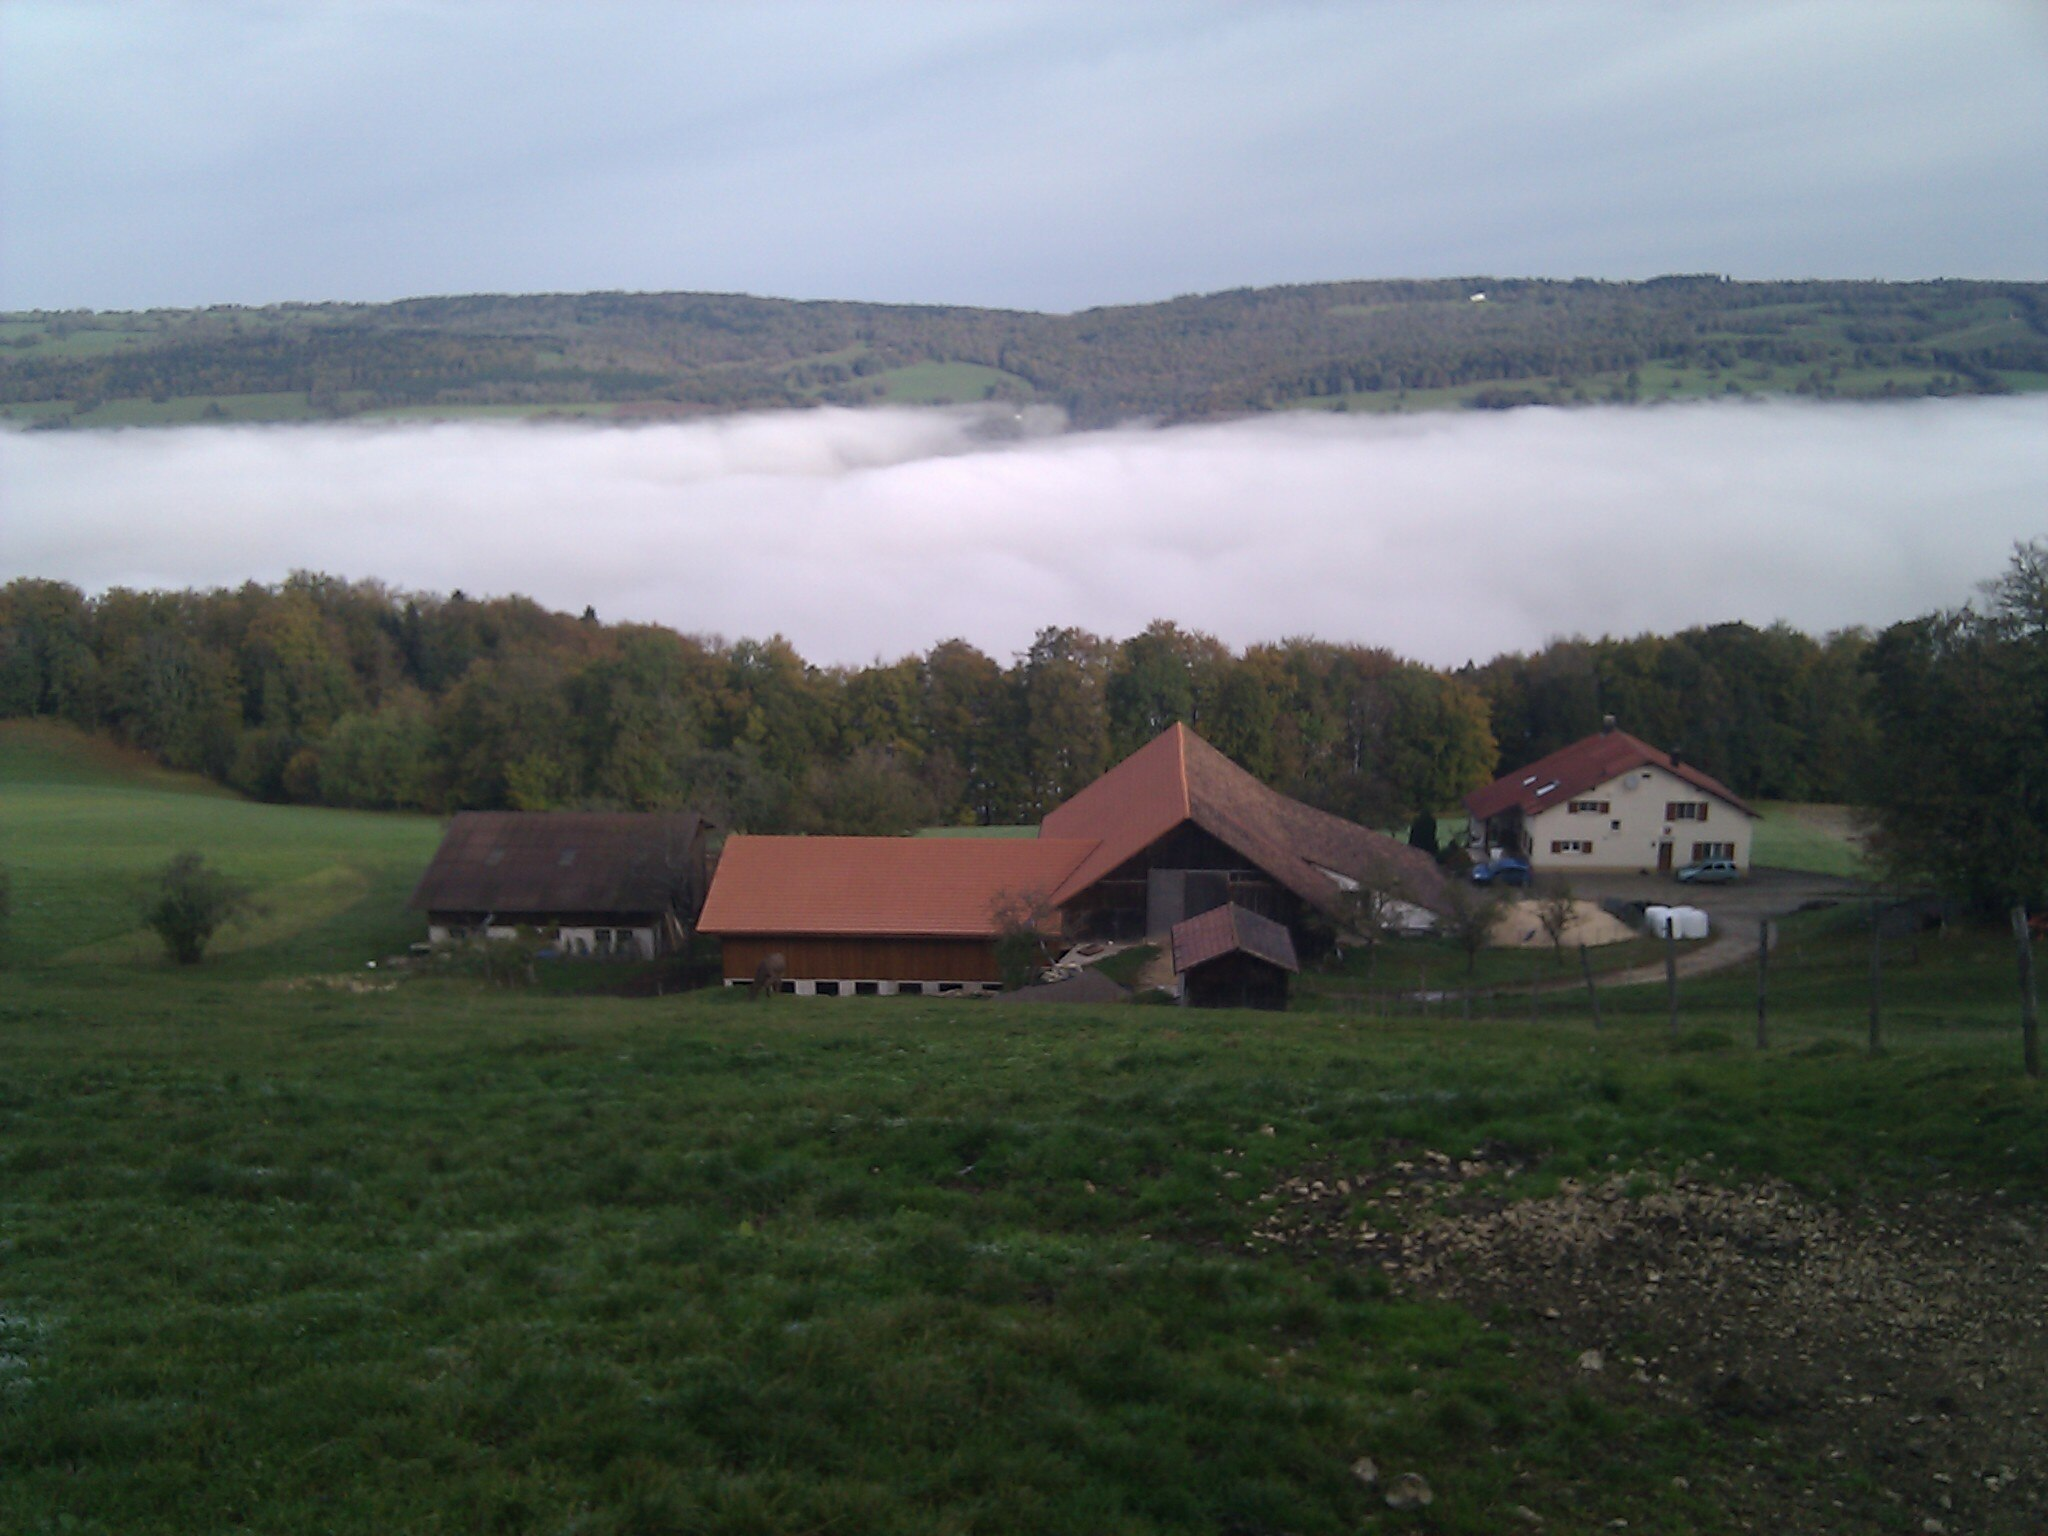 Early fog in the Doubs valley during our climb over the divide between the ends of the great bend.